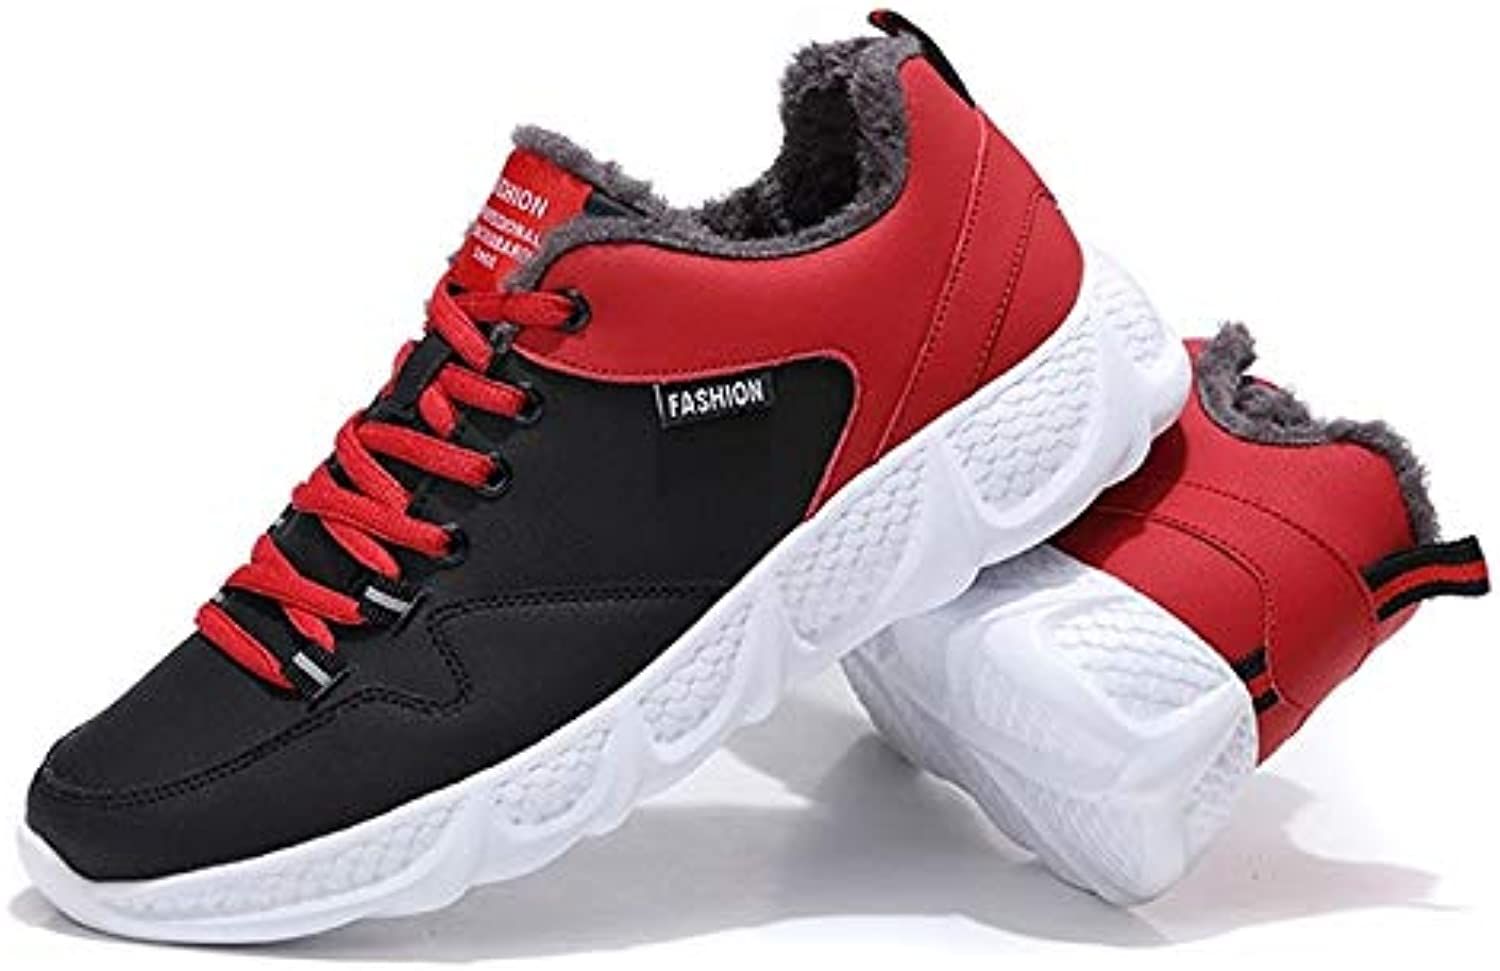 shoes for Men or Women hyx Lace-up Trend Outdoor Comfortable Casual Warm shoes, Size 38, color Black Red (color   Black Red)